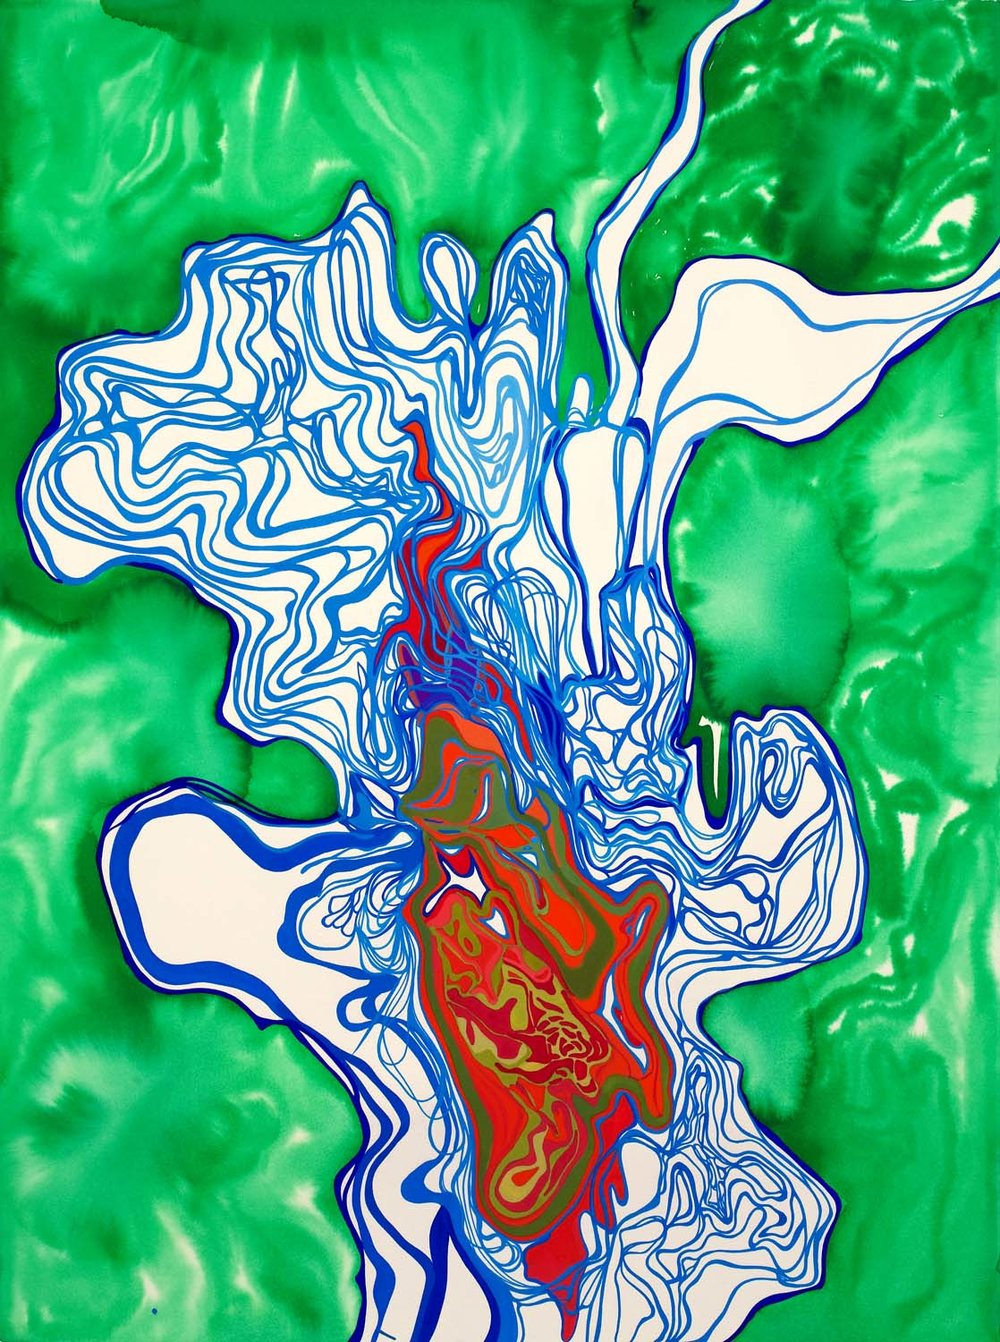 untitled bp, tbd 30 x 23 inches gouache on paper 200-168